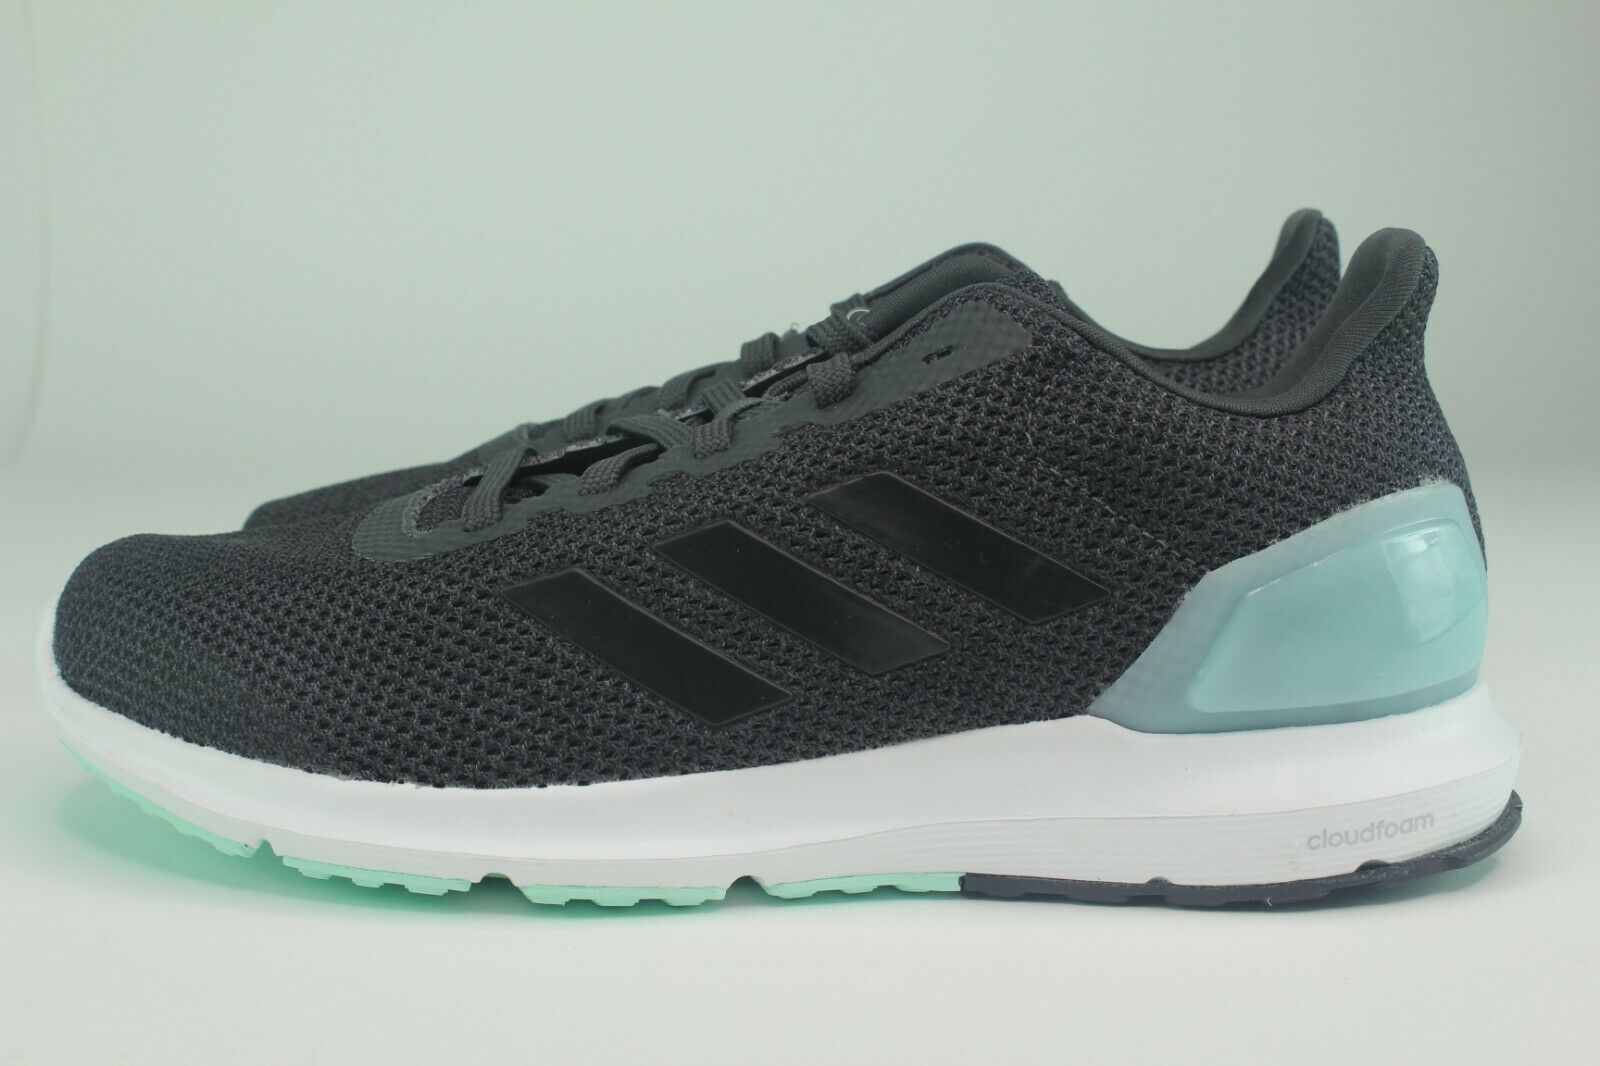 ADIDAS COSMIC 2 B44744 WOMAN SIZE 8.0 NEW CARBON TEAL COMFORTABLE